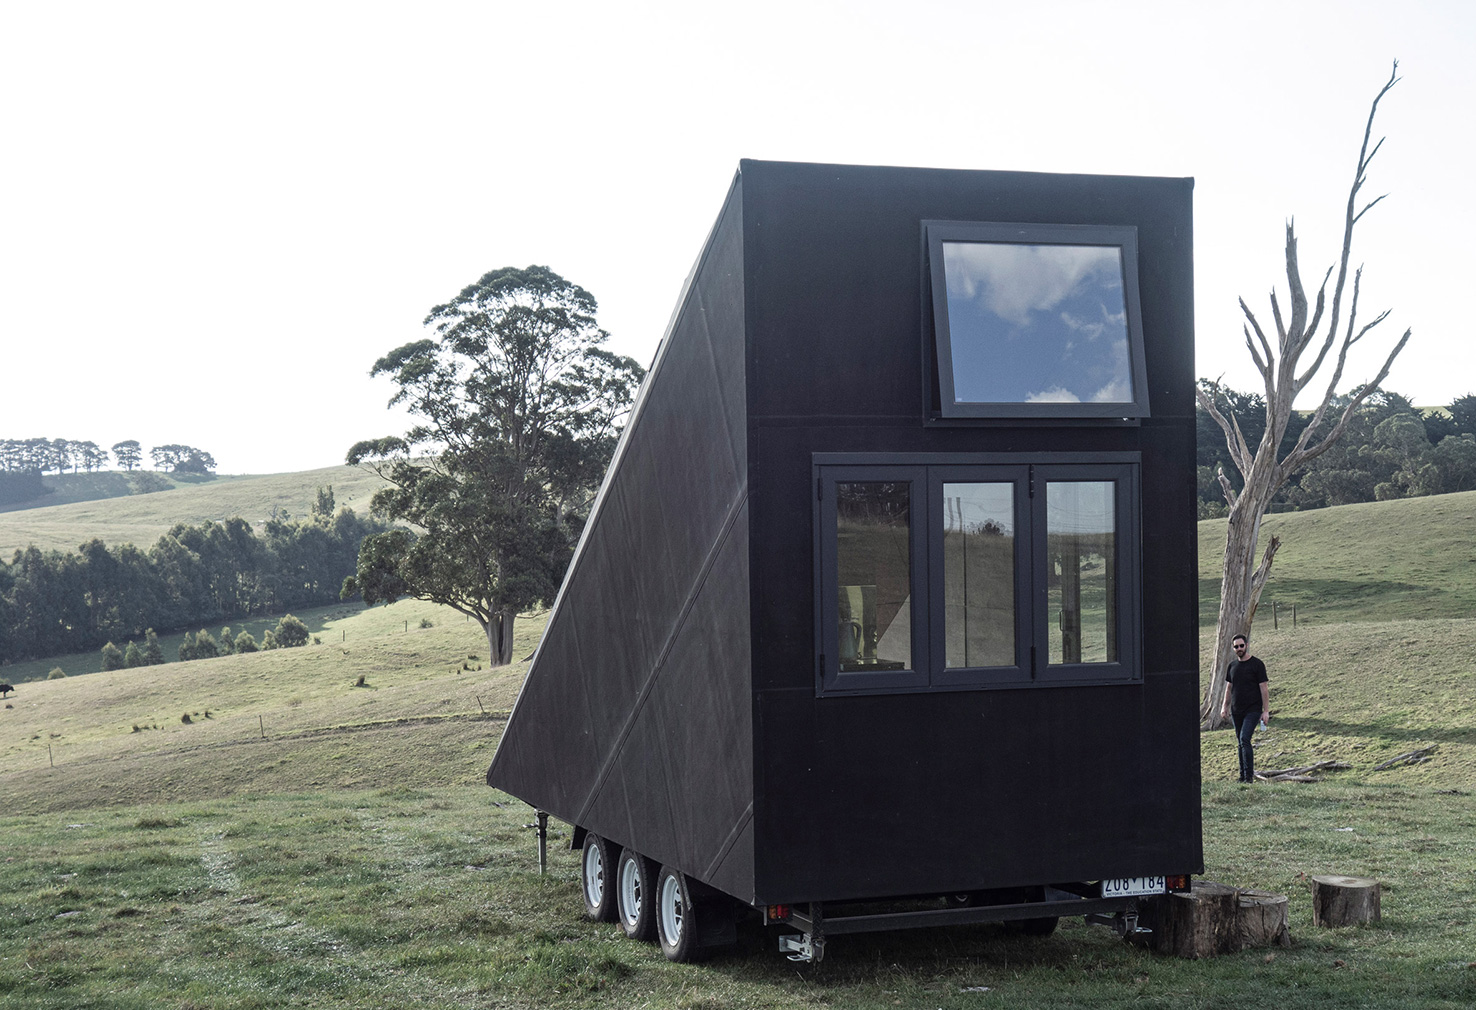 Base Cabin is a minimalist tiny home you can tow